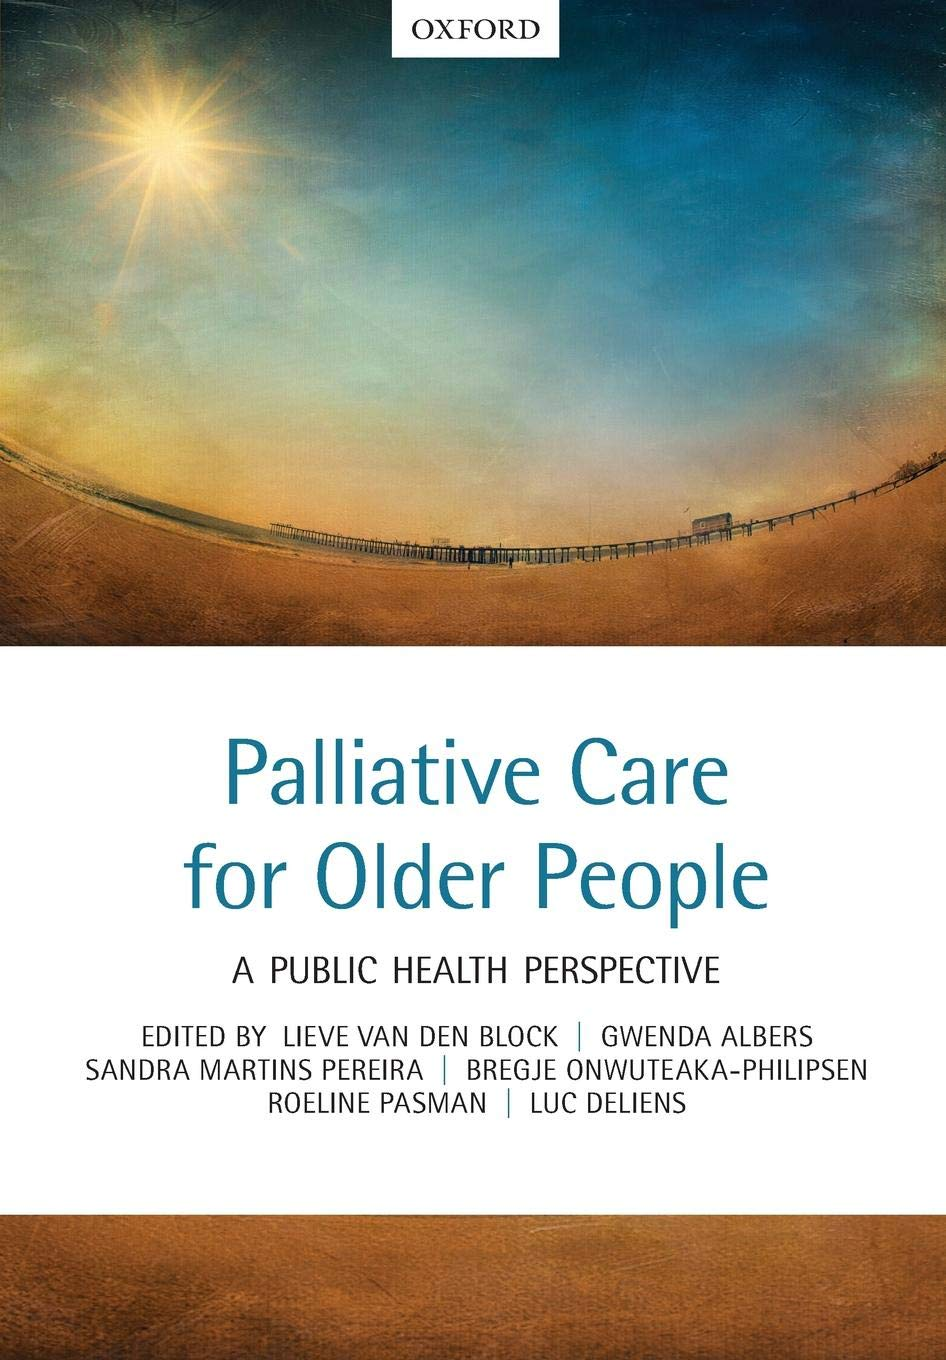 Palliative Care For Older People  A Public Health Perspective  Oxford Textbook